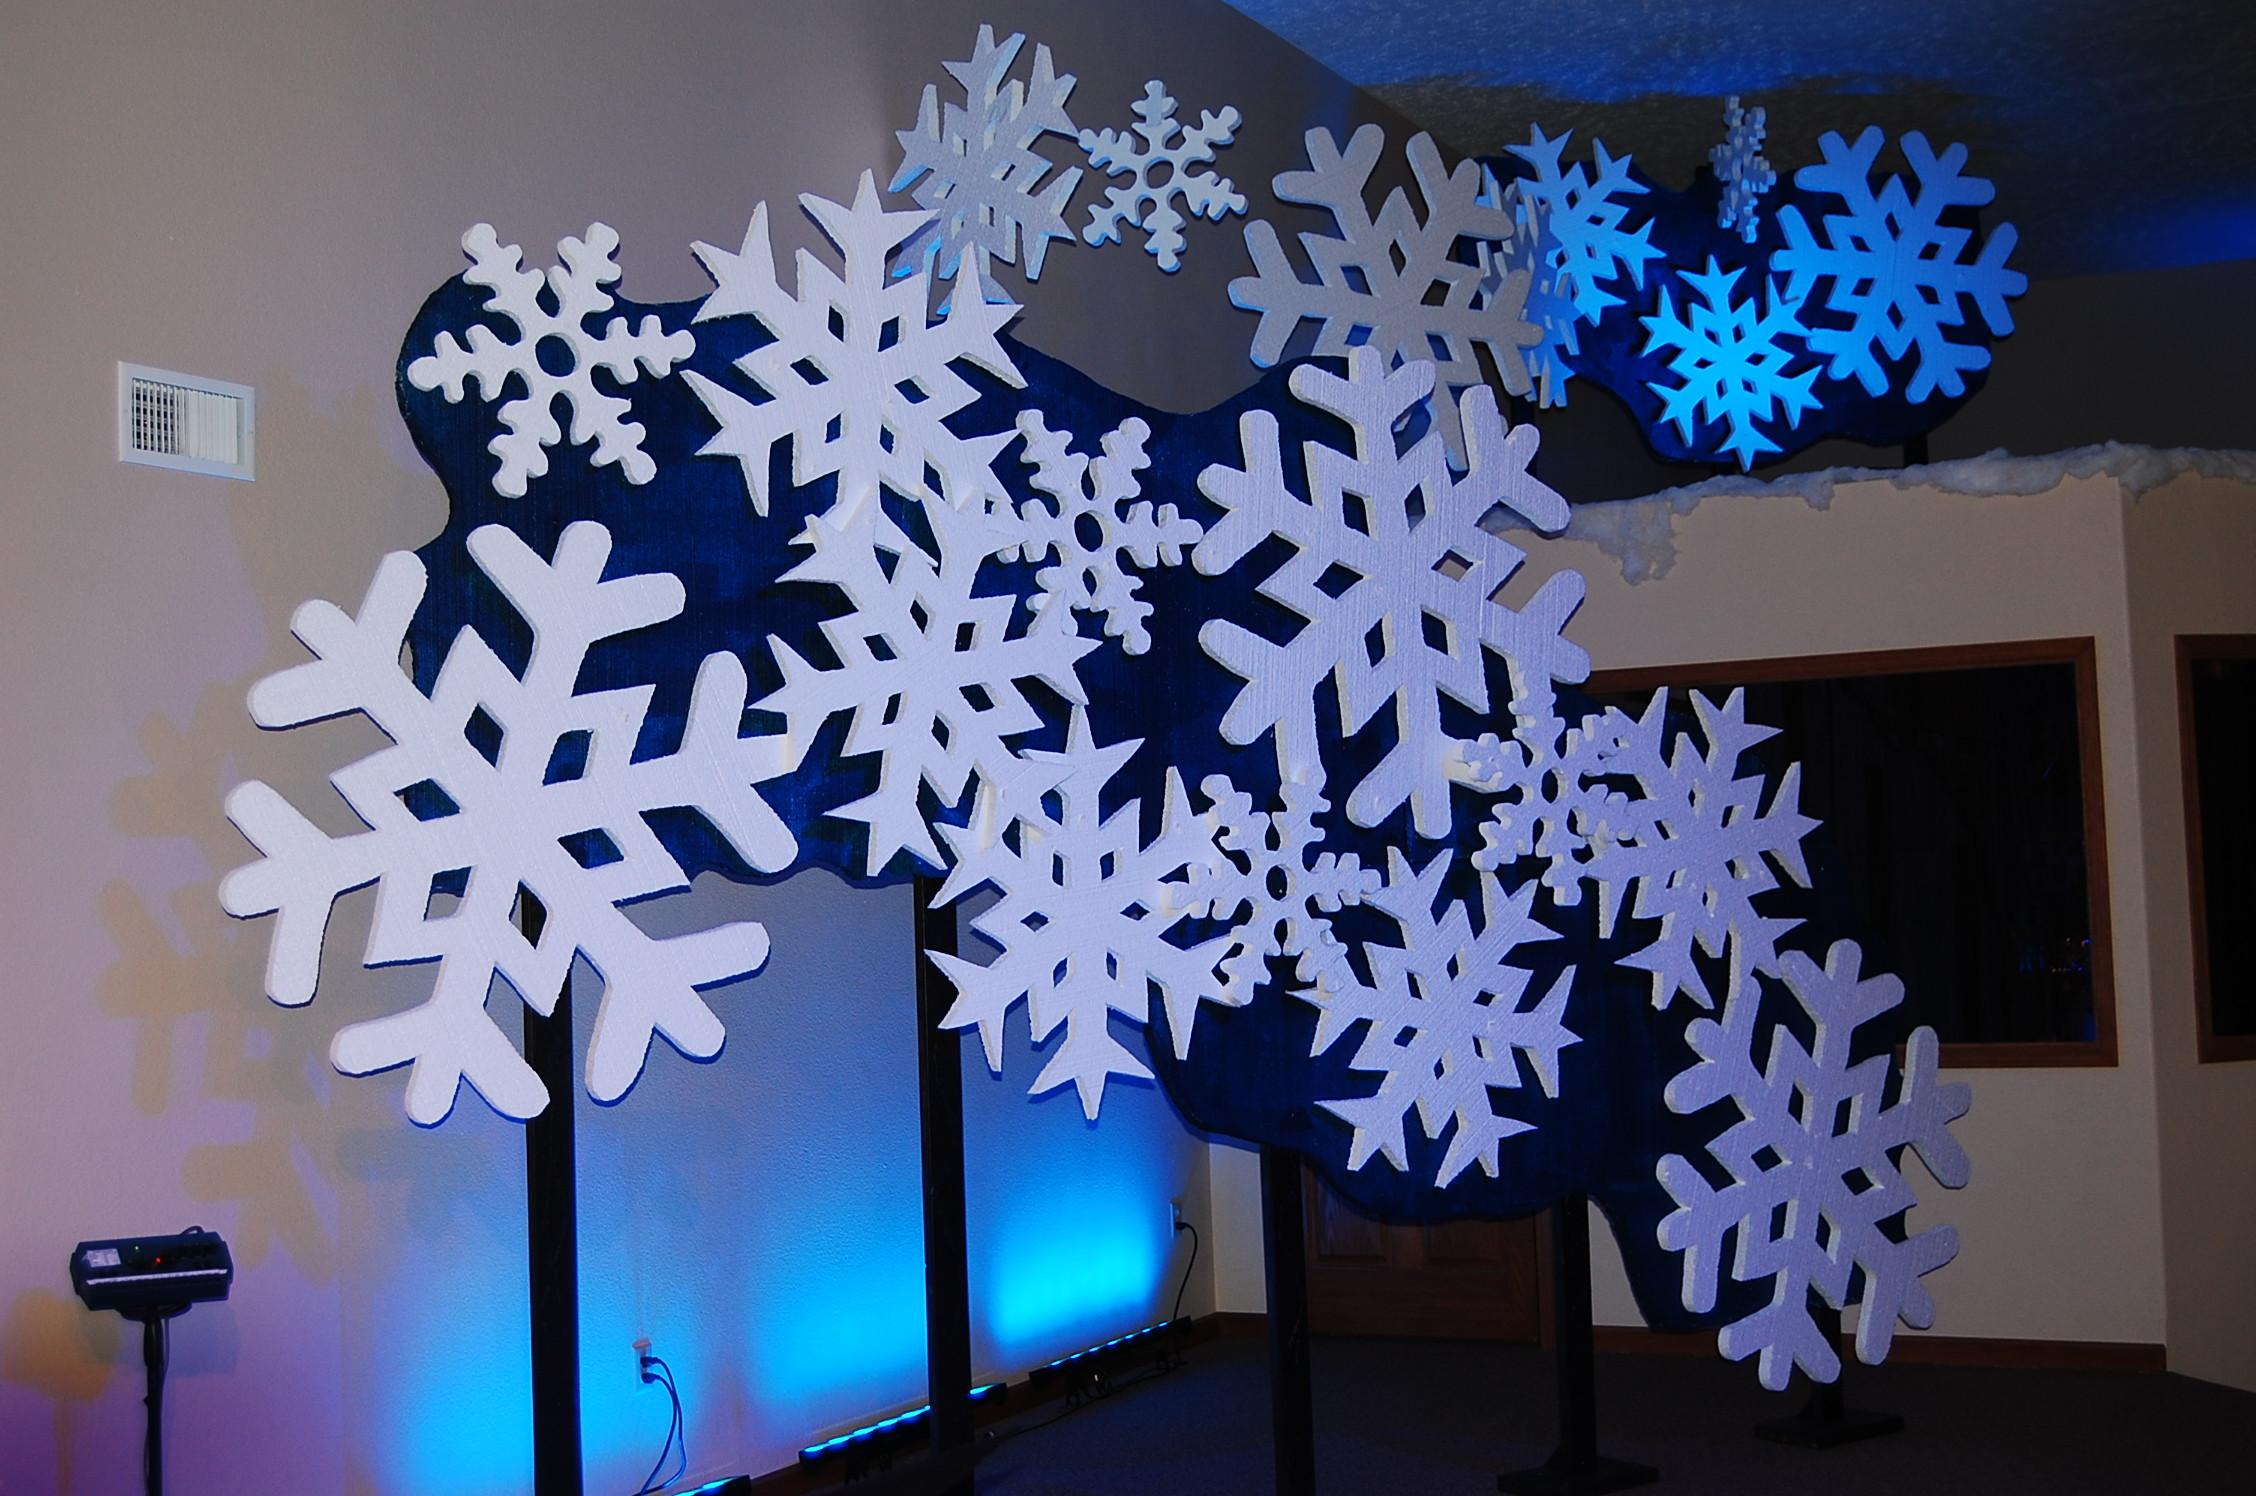 Snowflakes Falling Everywhere Church Stage Design Ideas